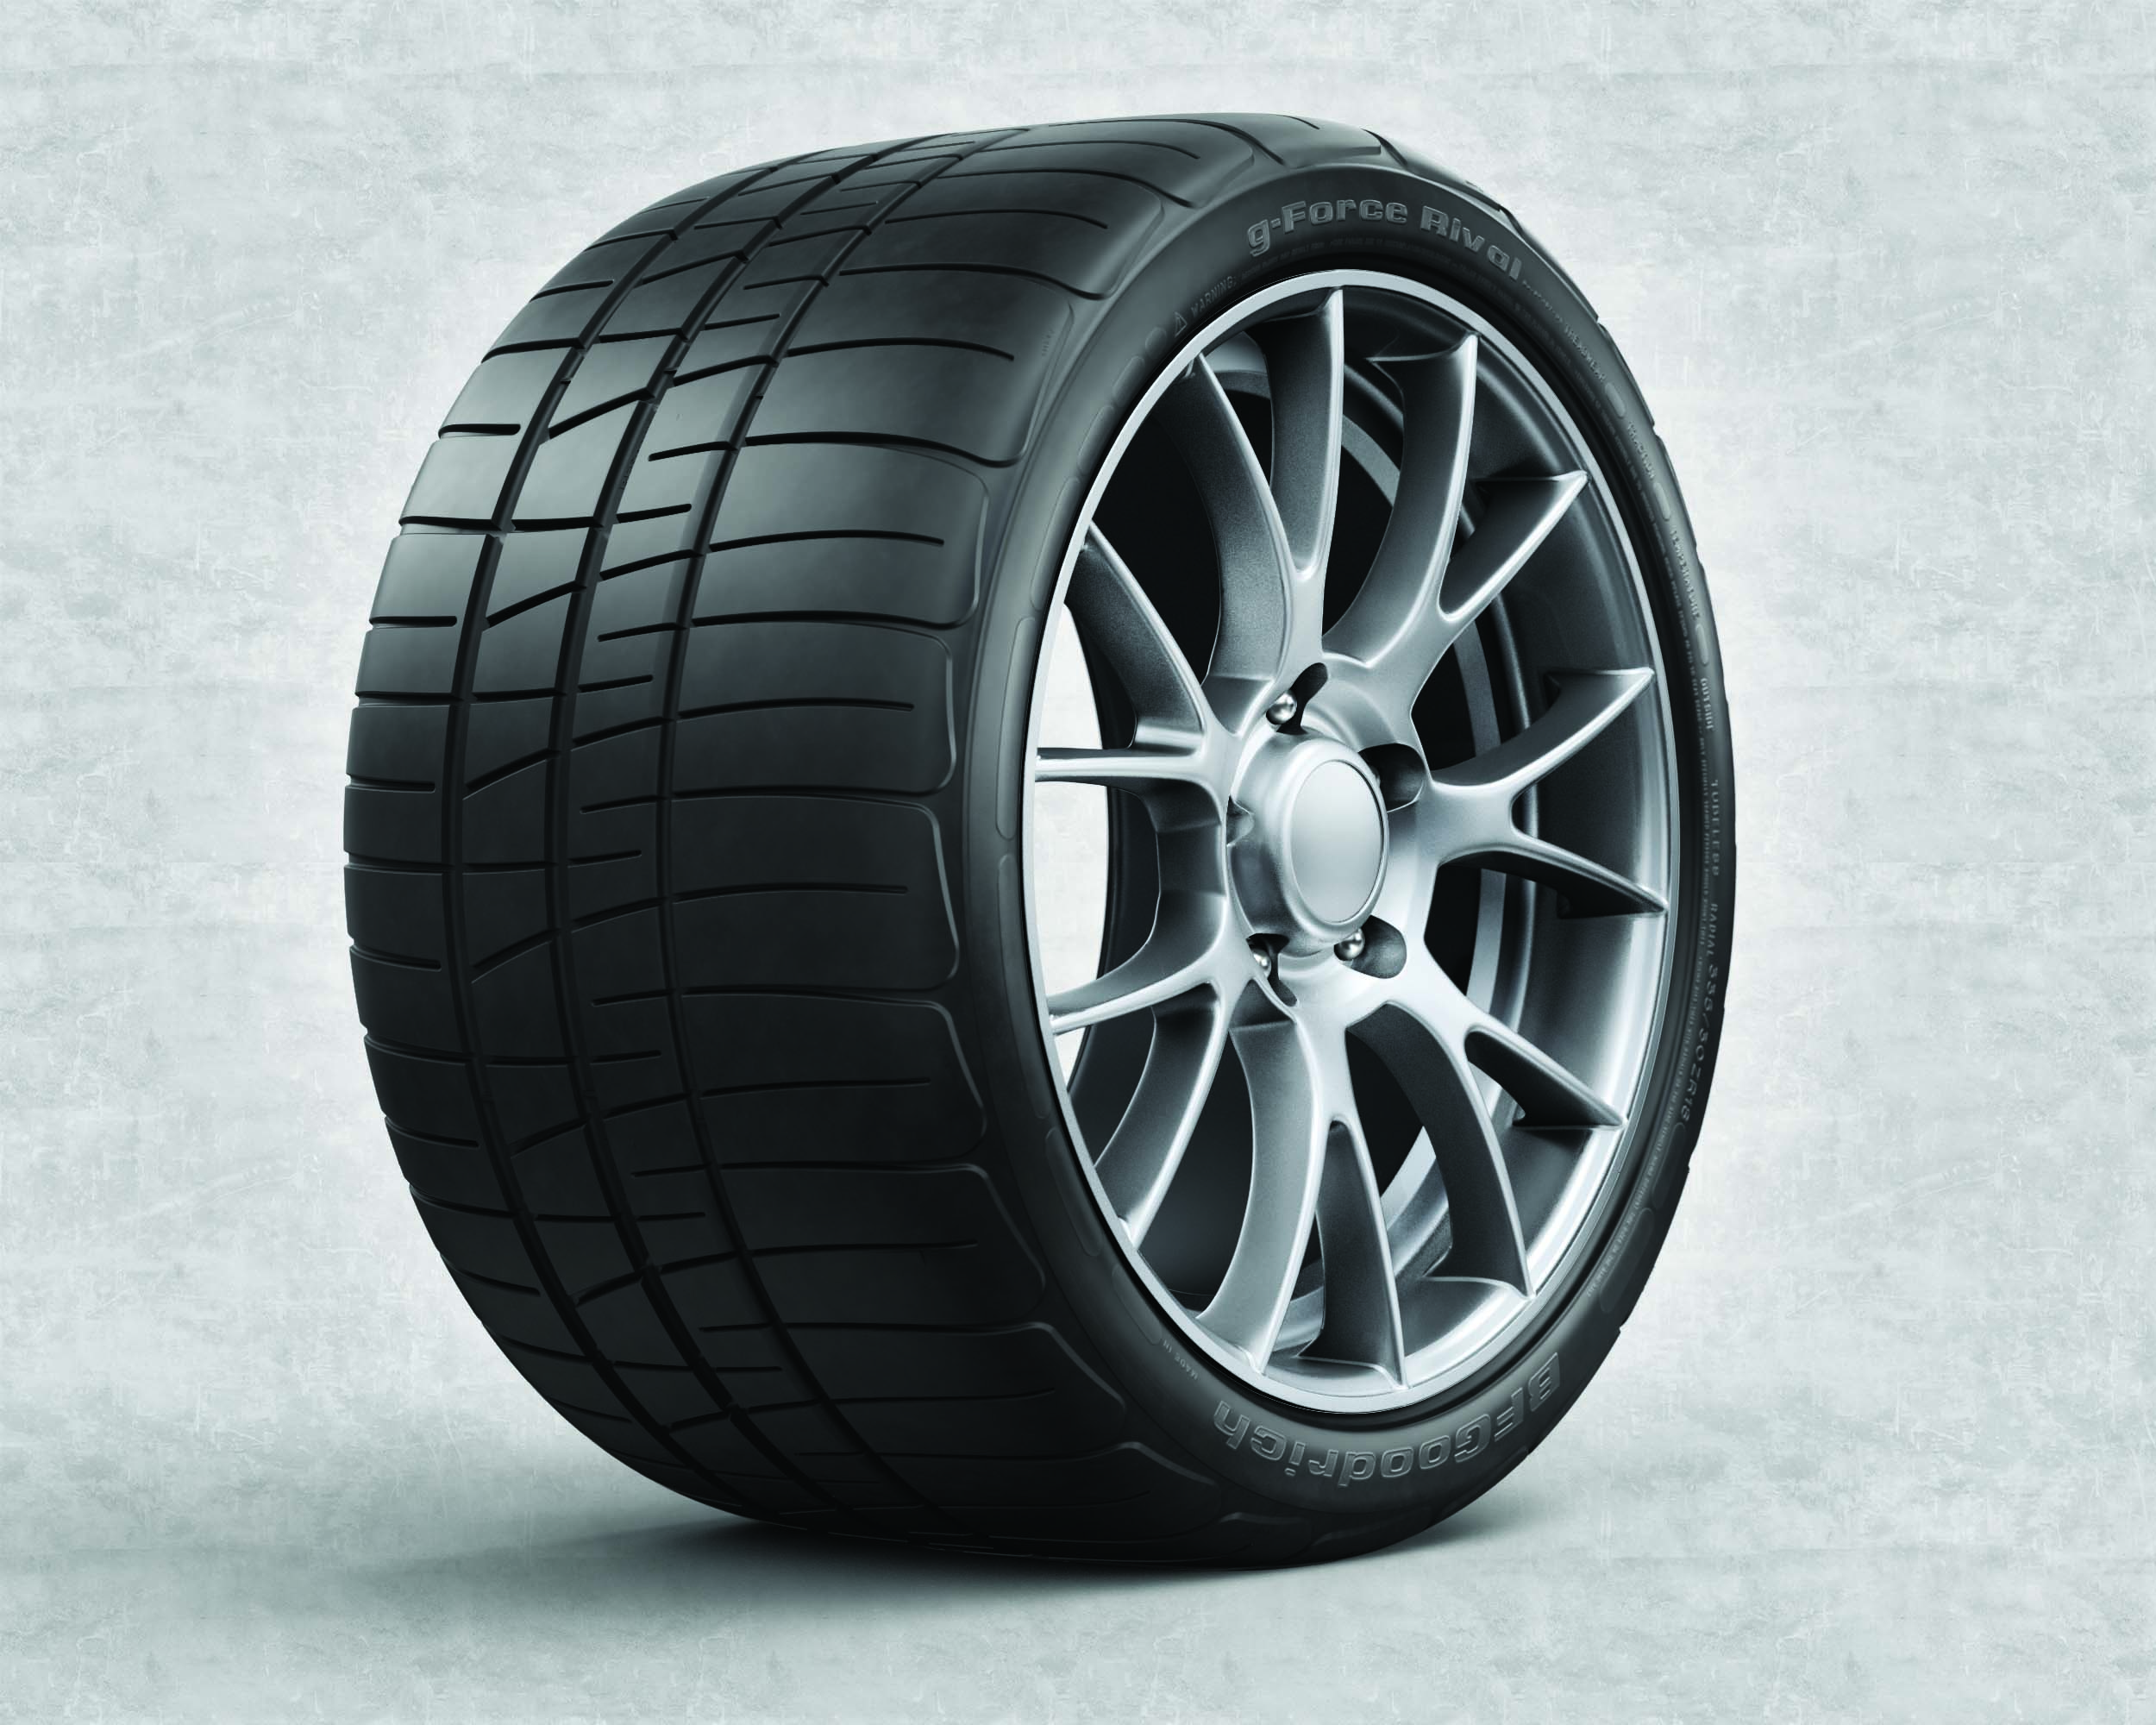 BFGoodrich Rival Extreme Performance Tire Test